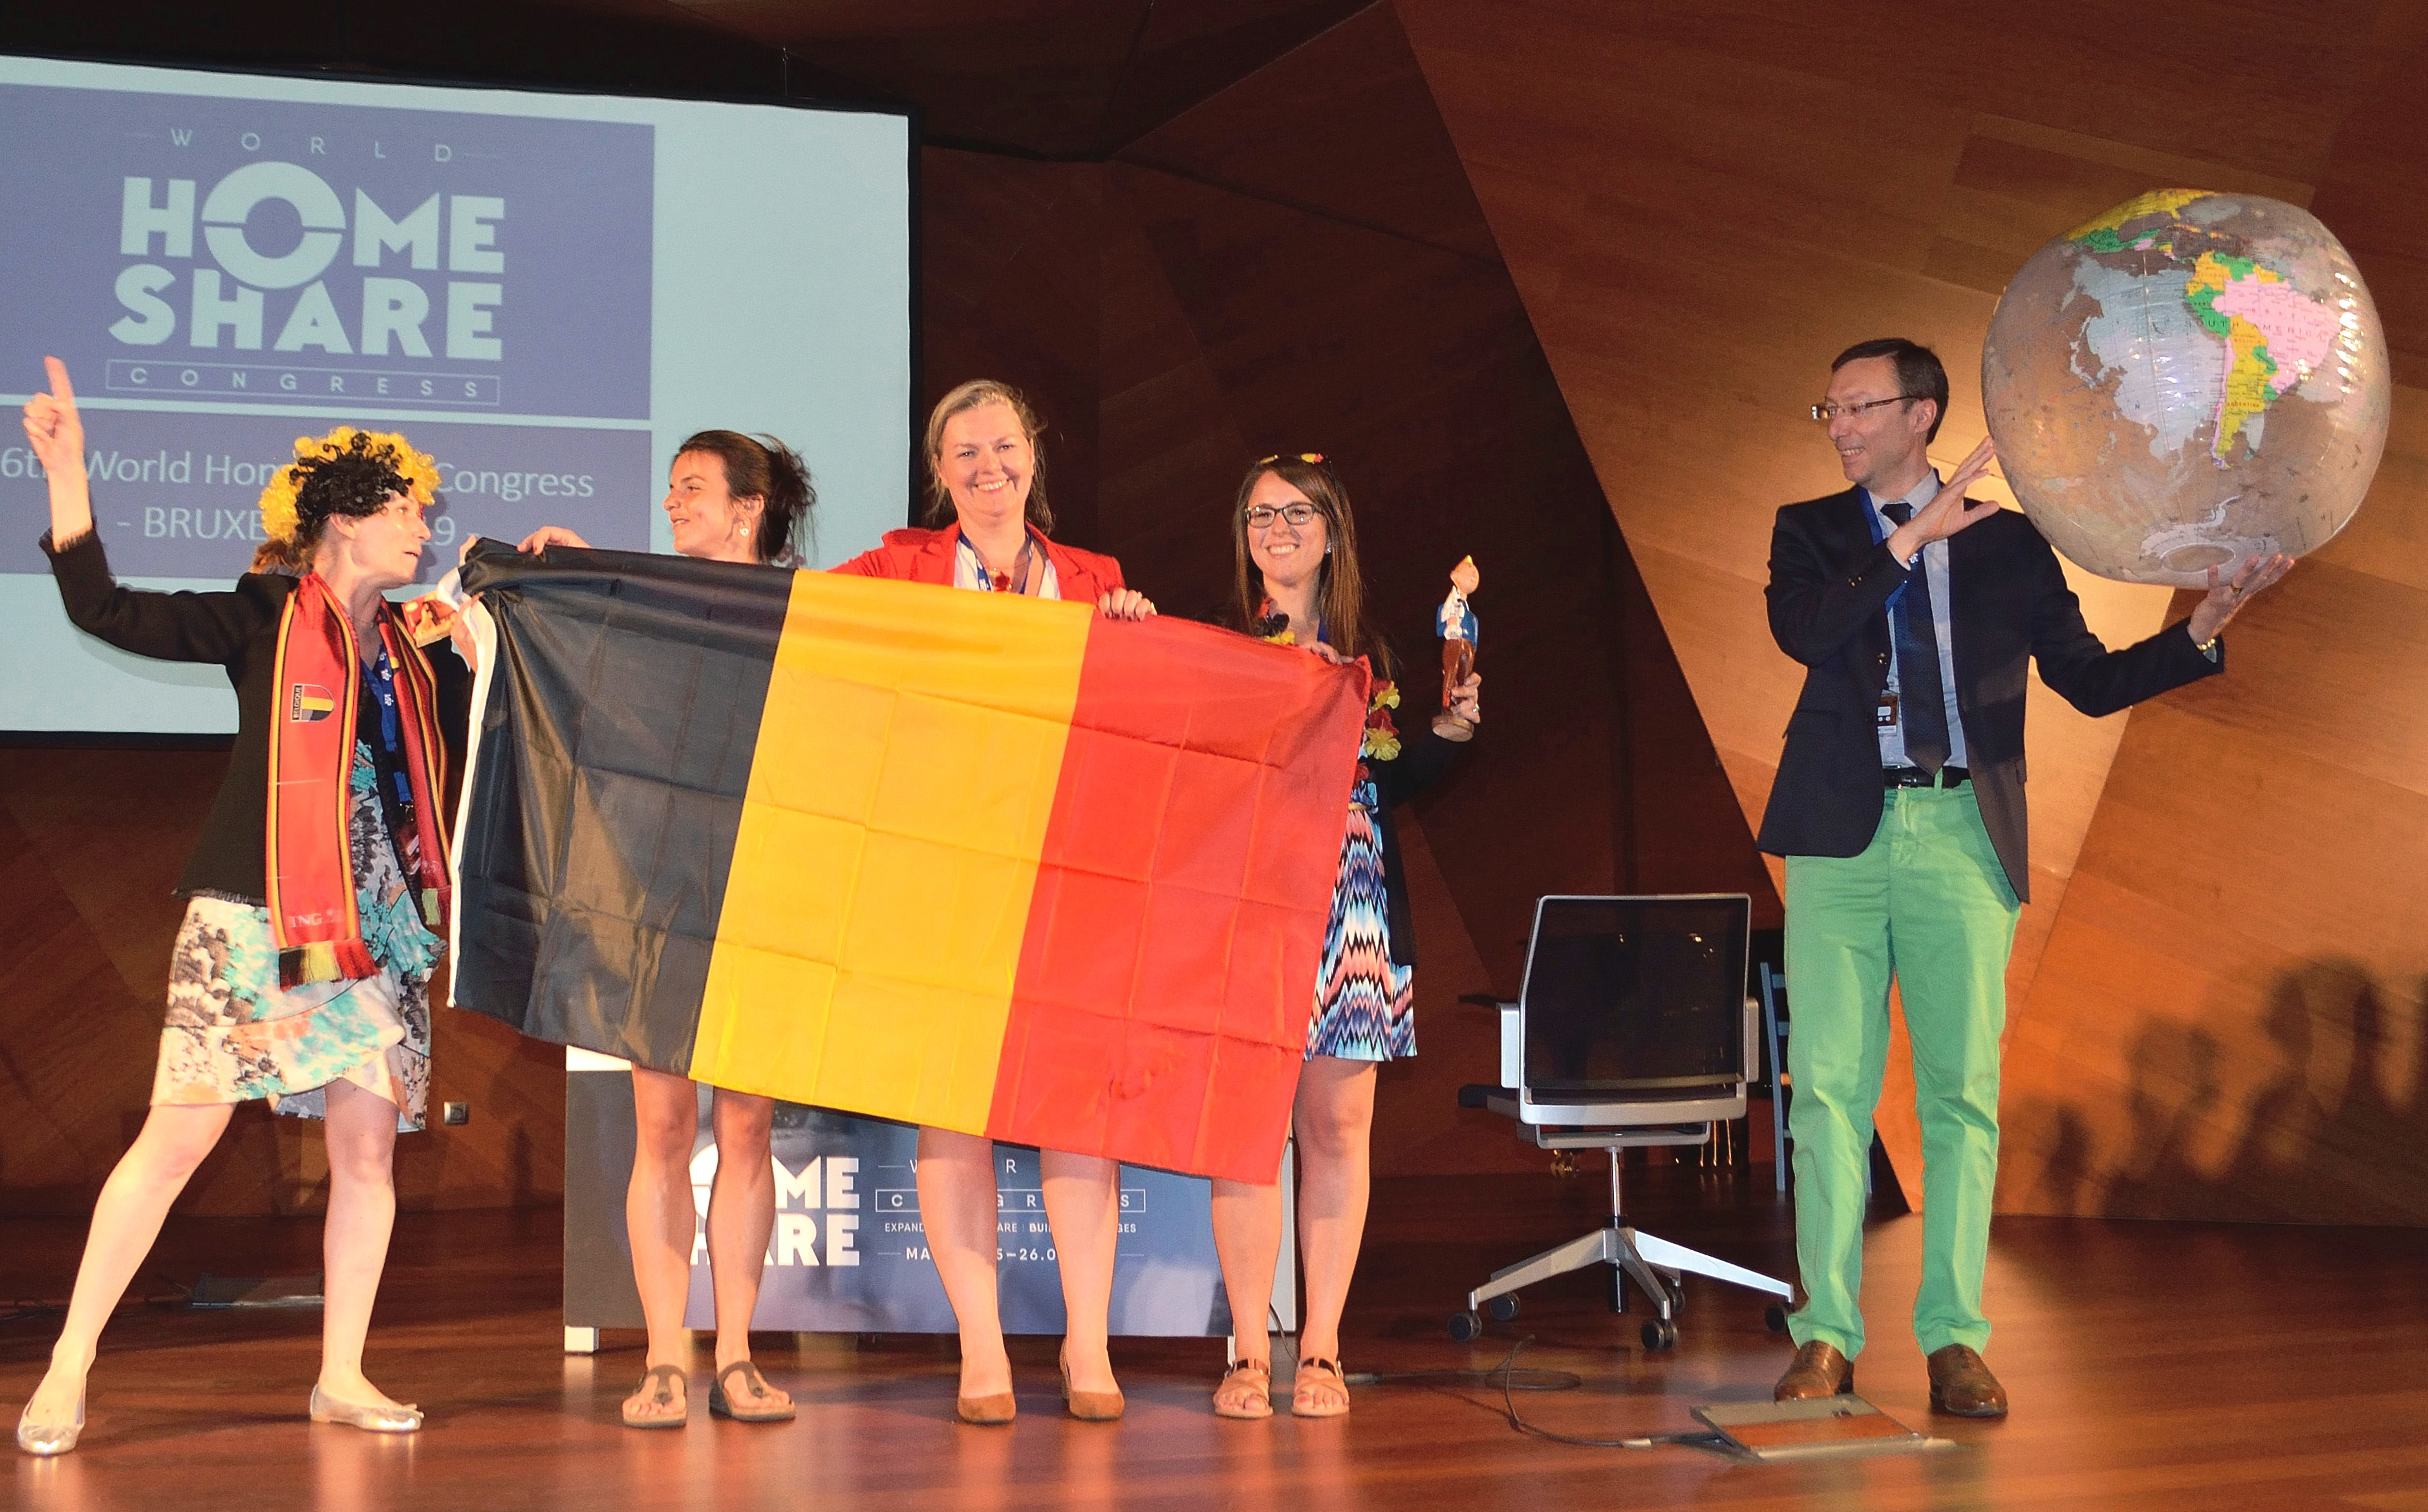 The globe is passed to Belgium who will host the Homeshare International Congress in 2019